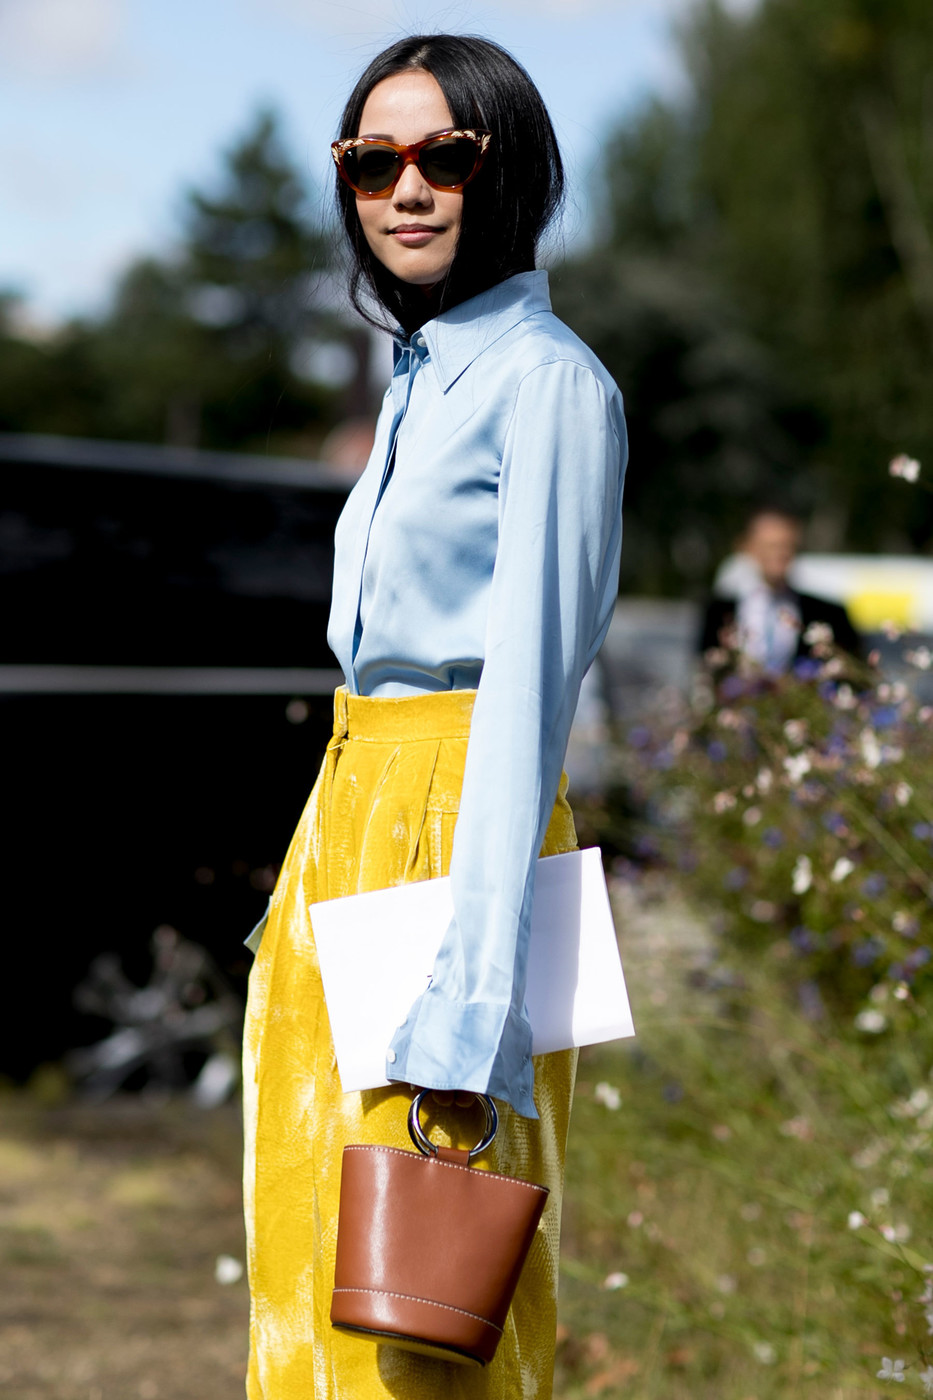 Sky Blue And Sunshine Ridiculously Chic Street Style At Paris Fashion Week Livingly